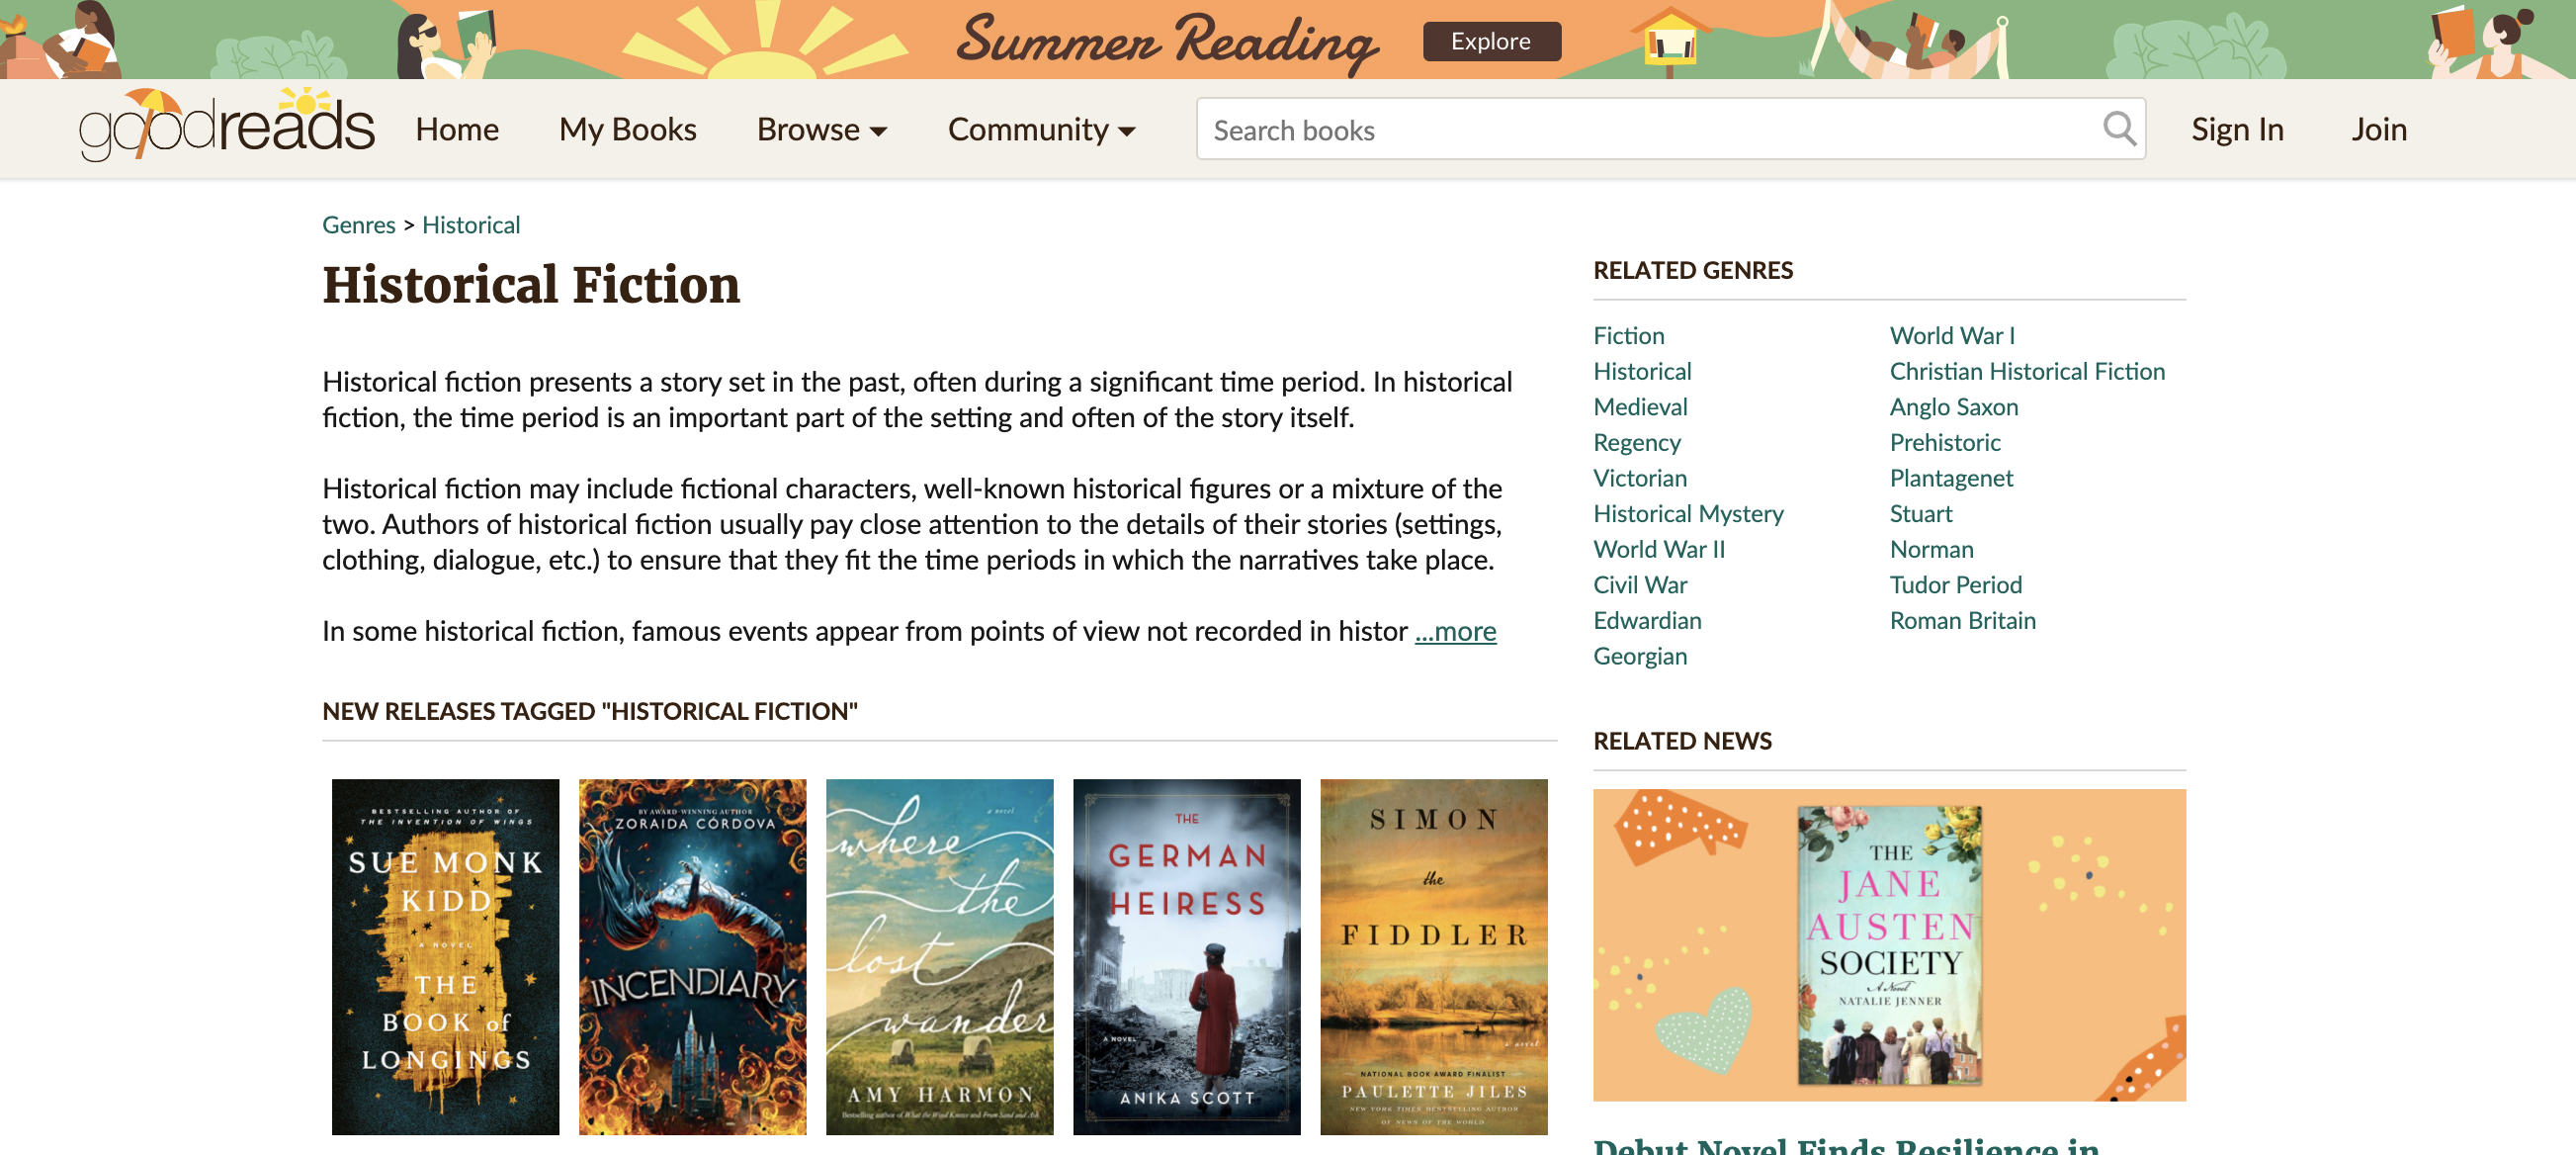 A search page on the Goodreads website with results for historical fiction listed.